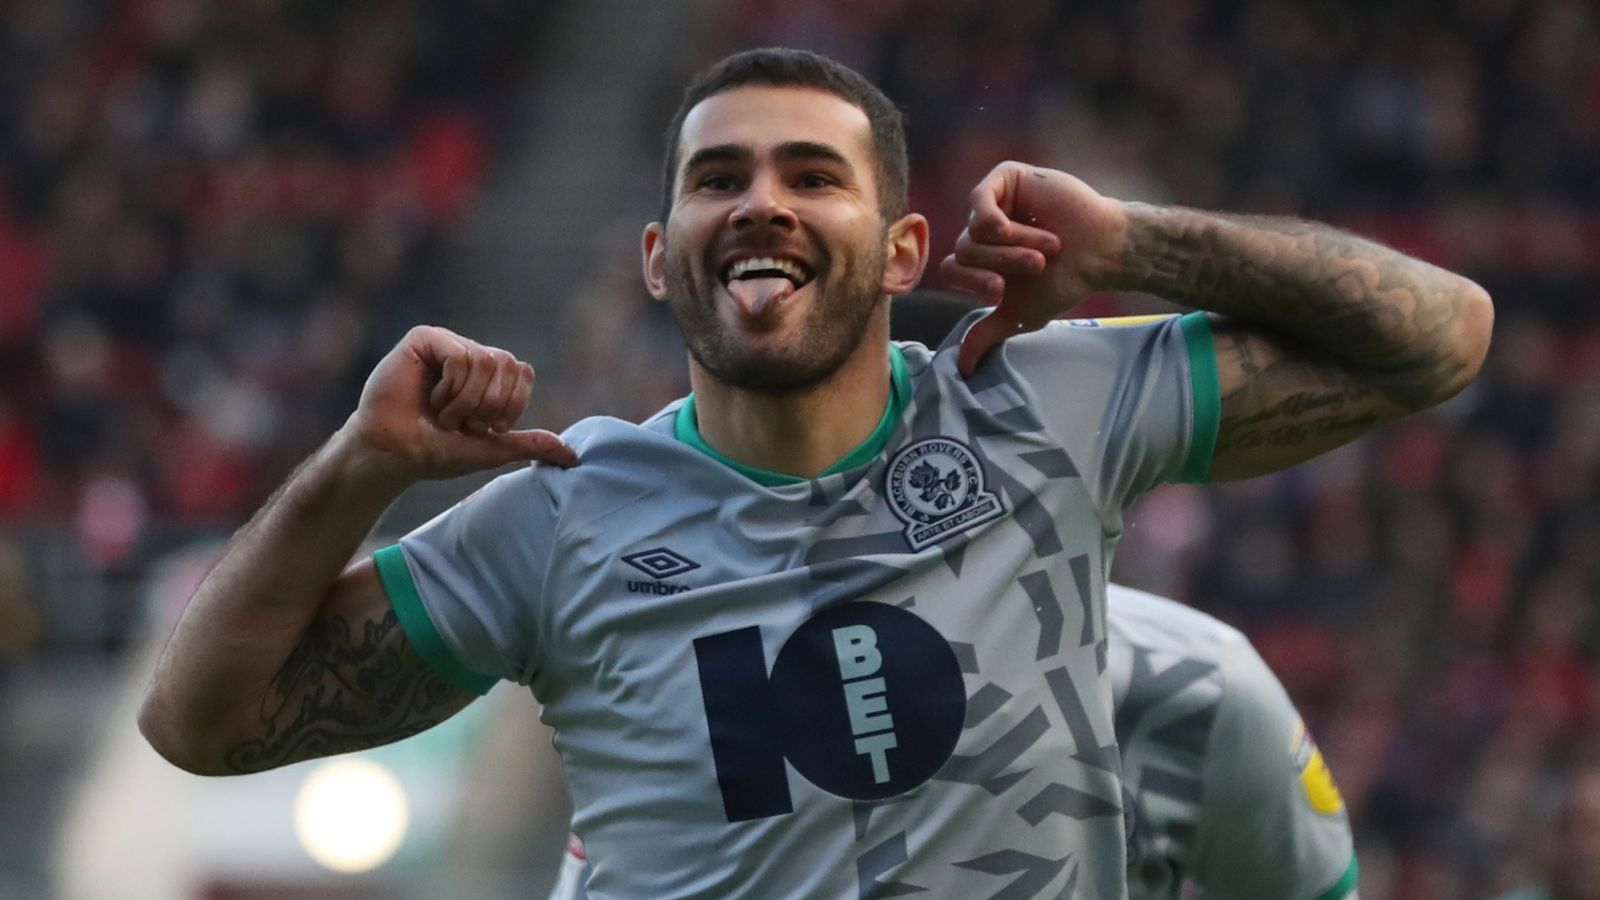 Bristol City 0-2 Blackburn: Rovers ease to victory